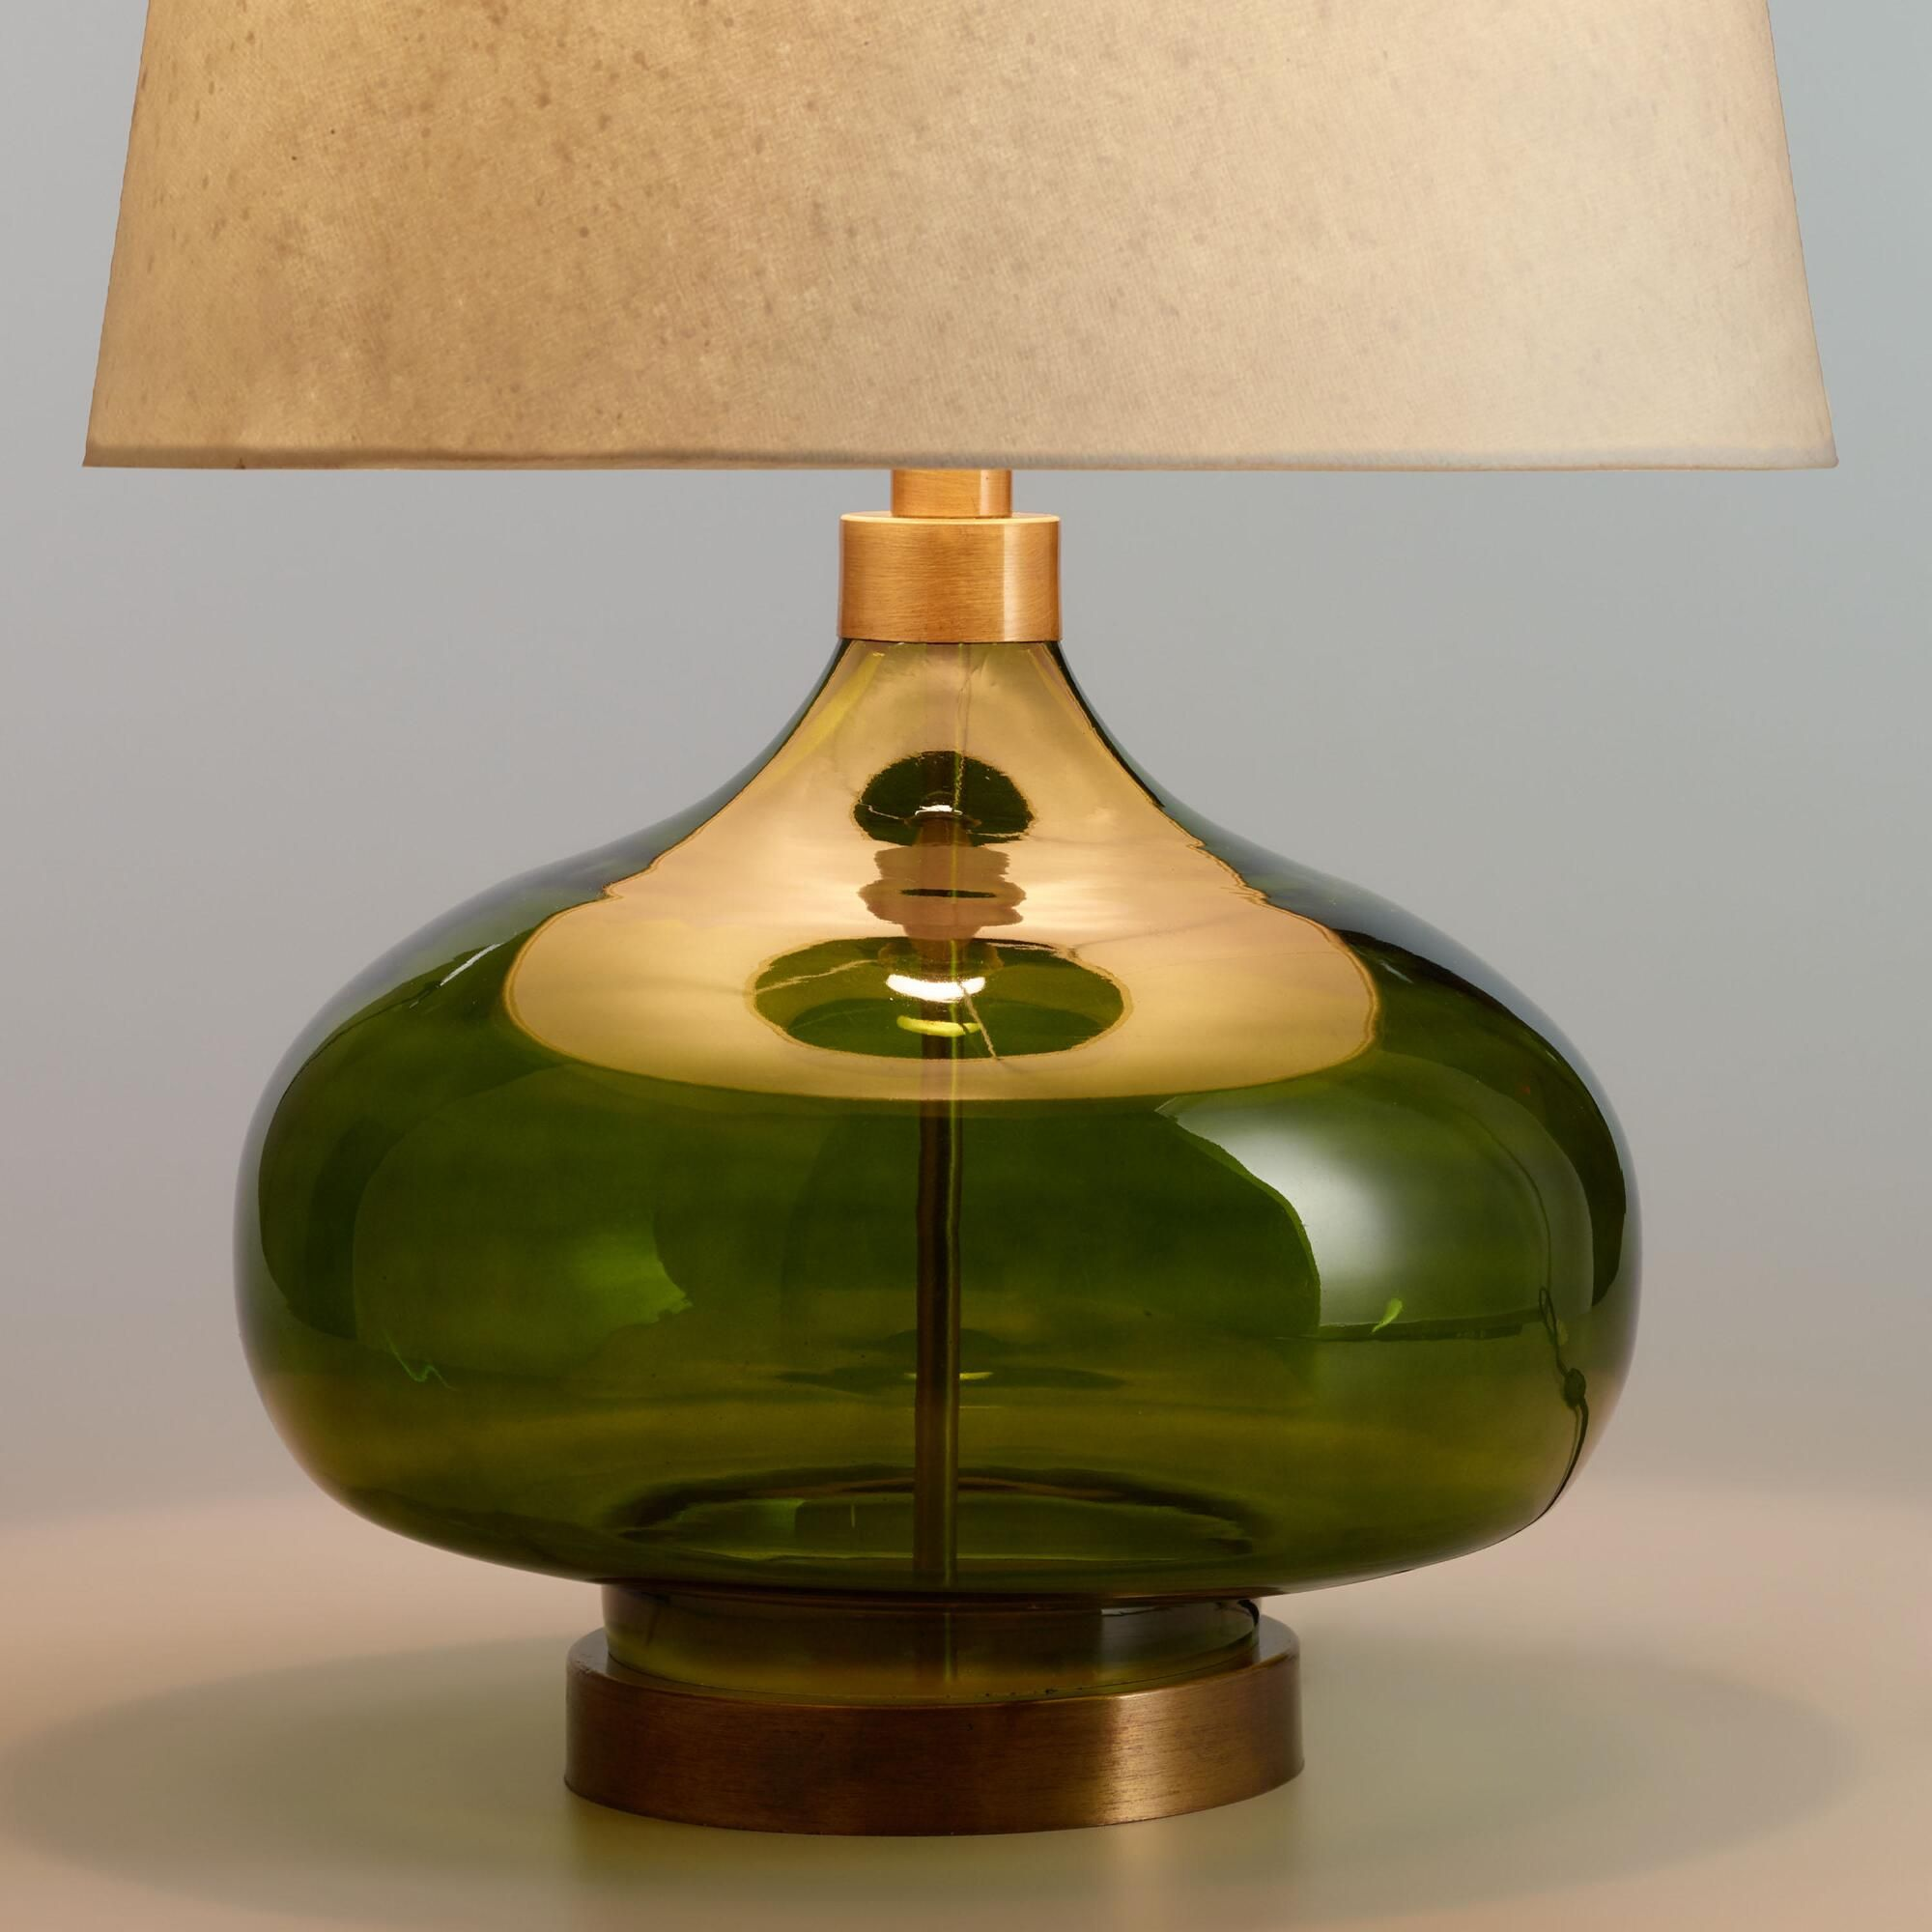 Green Glass Teardrop Halsey Table Lamp Base By World Market In 2020 Table Lamp Base Lamp Bases Table Lamp